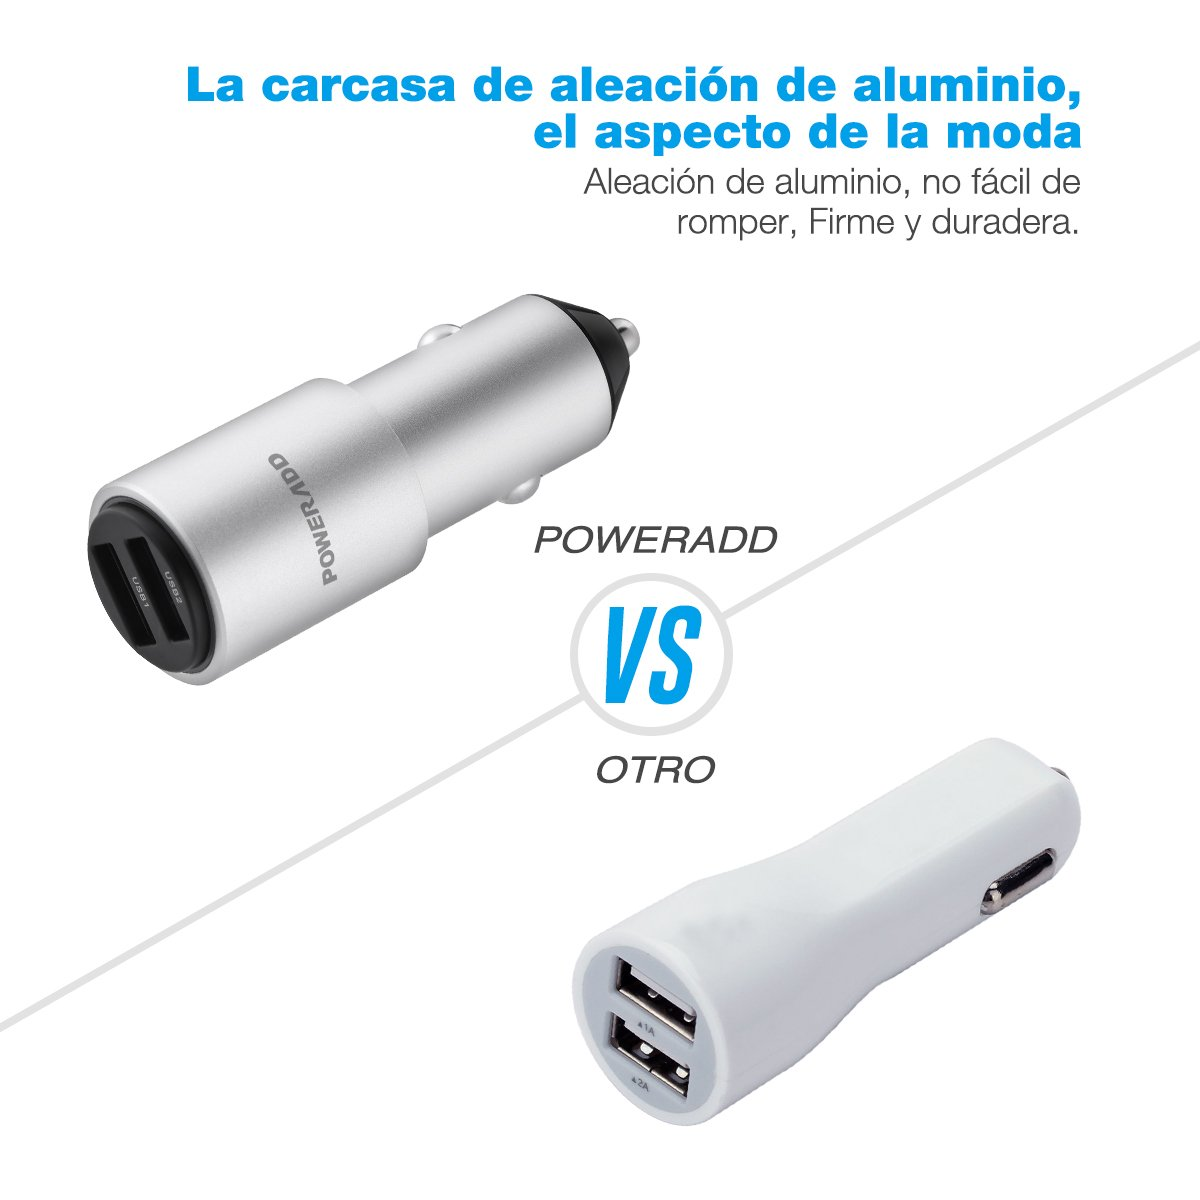 [Qualcomm Quick Charge 3.0] Poweradd 2 Puertos USB Cargador de Coche Adaptador USB con Tecnología Qualcomm QC 3.0 para Galaxy S6 Edge, Note 4, Note 5/ Xiaomi 5/ LG G5/ HTC one A9/ Nexus 6 iPhone, iPad, iPod, Samsung, otros Smartphones y Tab